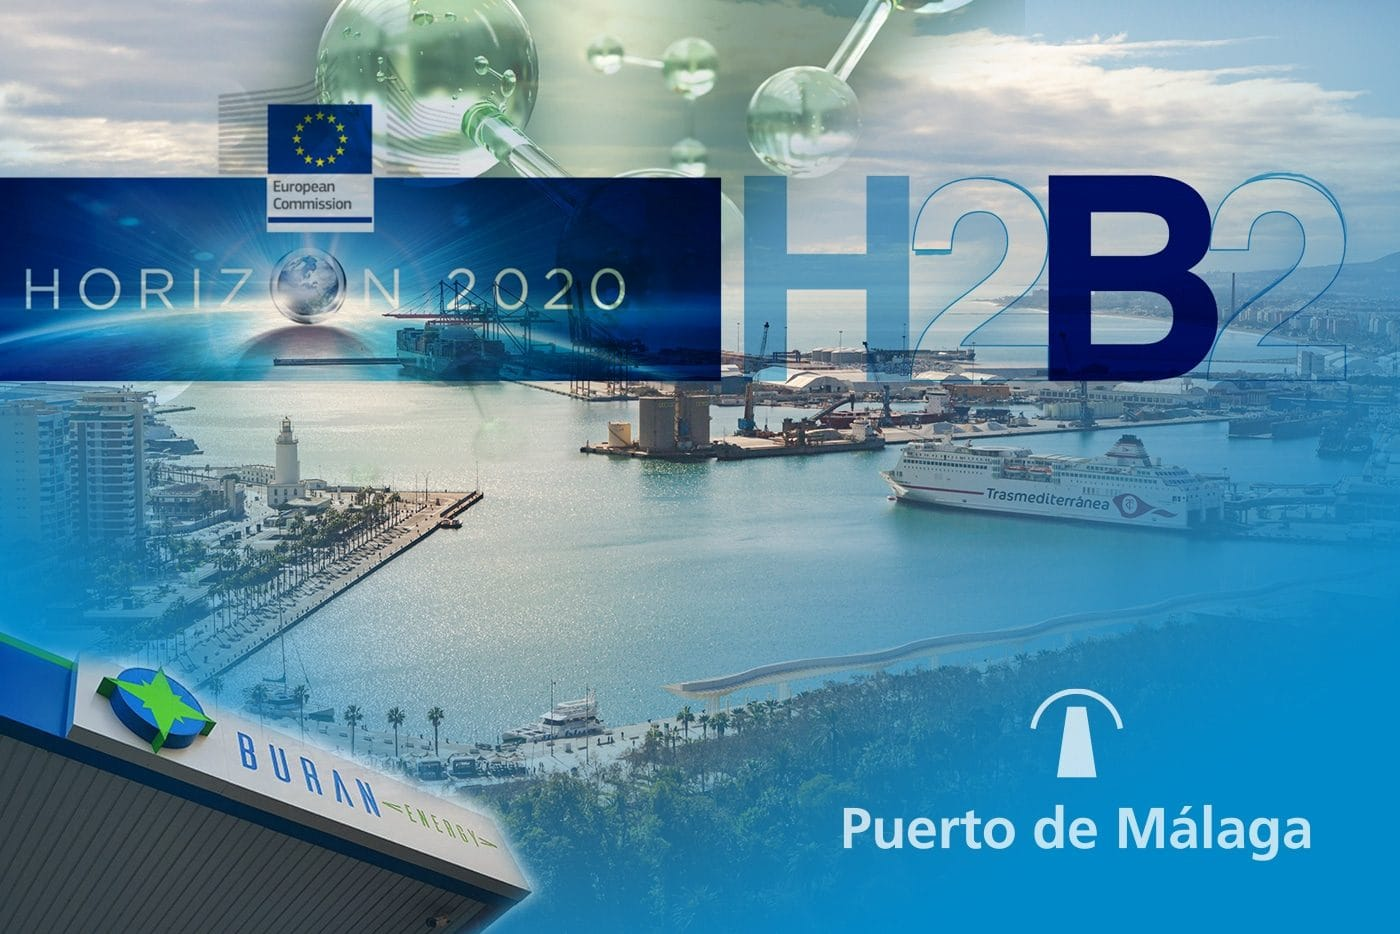 H2B2 participates in the Port of Malaga consortium together with Buran Energy in a commitment to green hydrogen